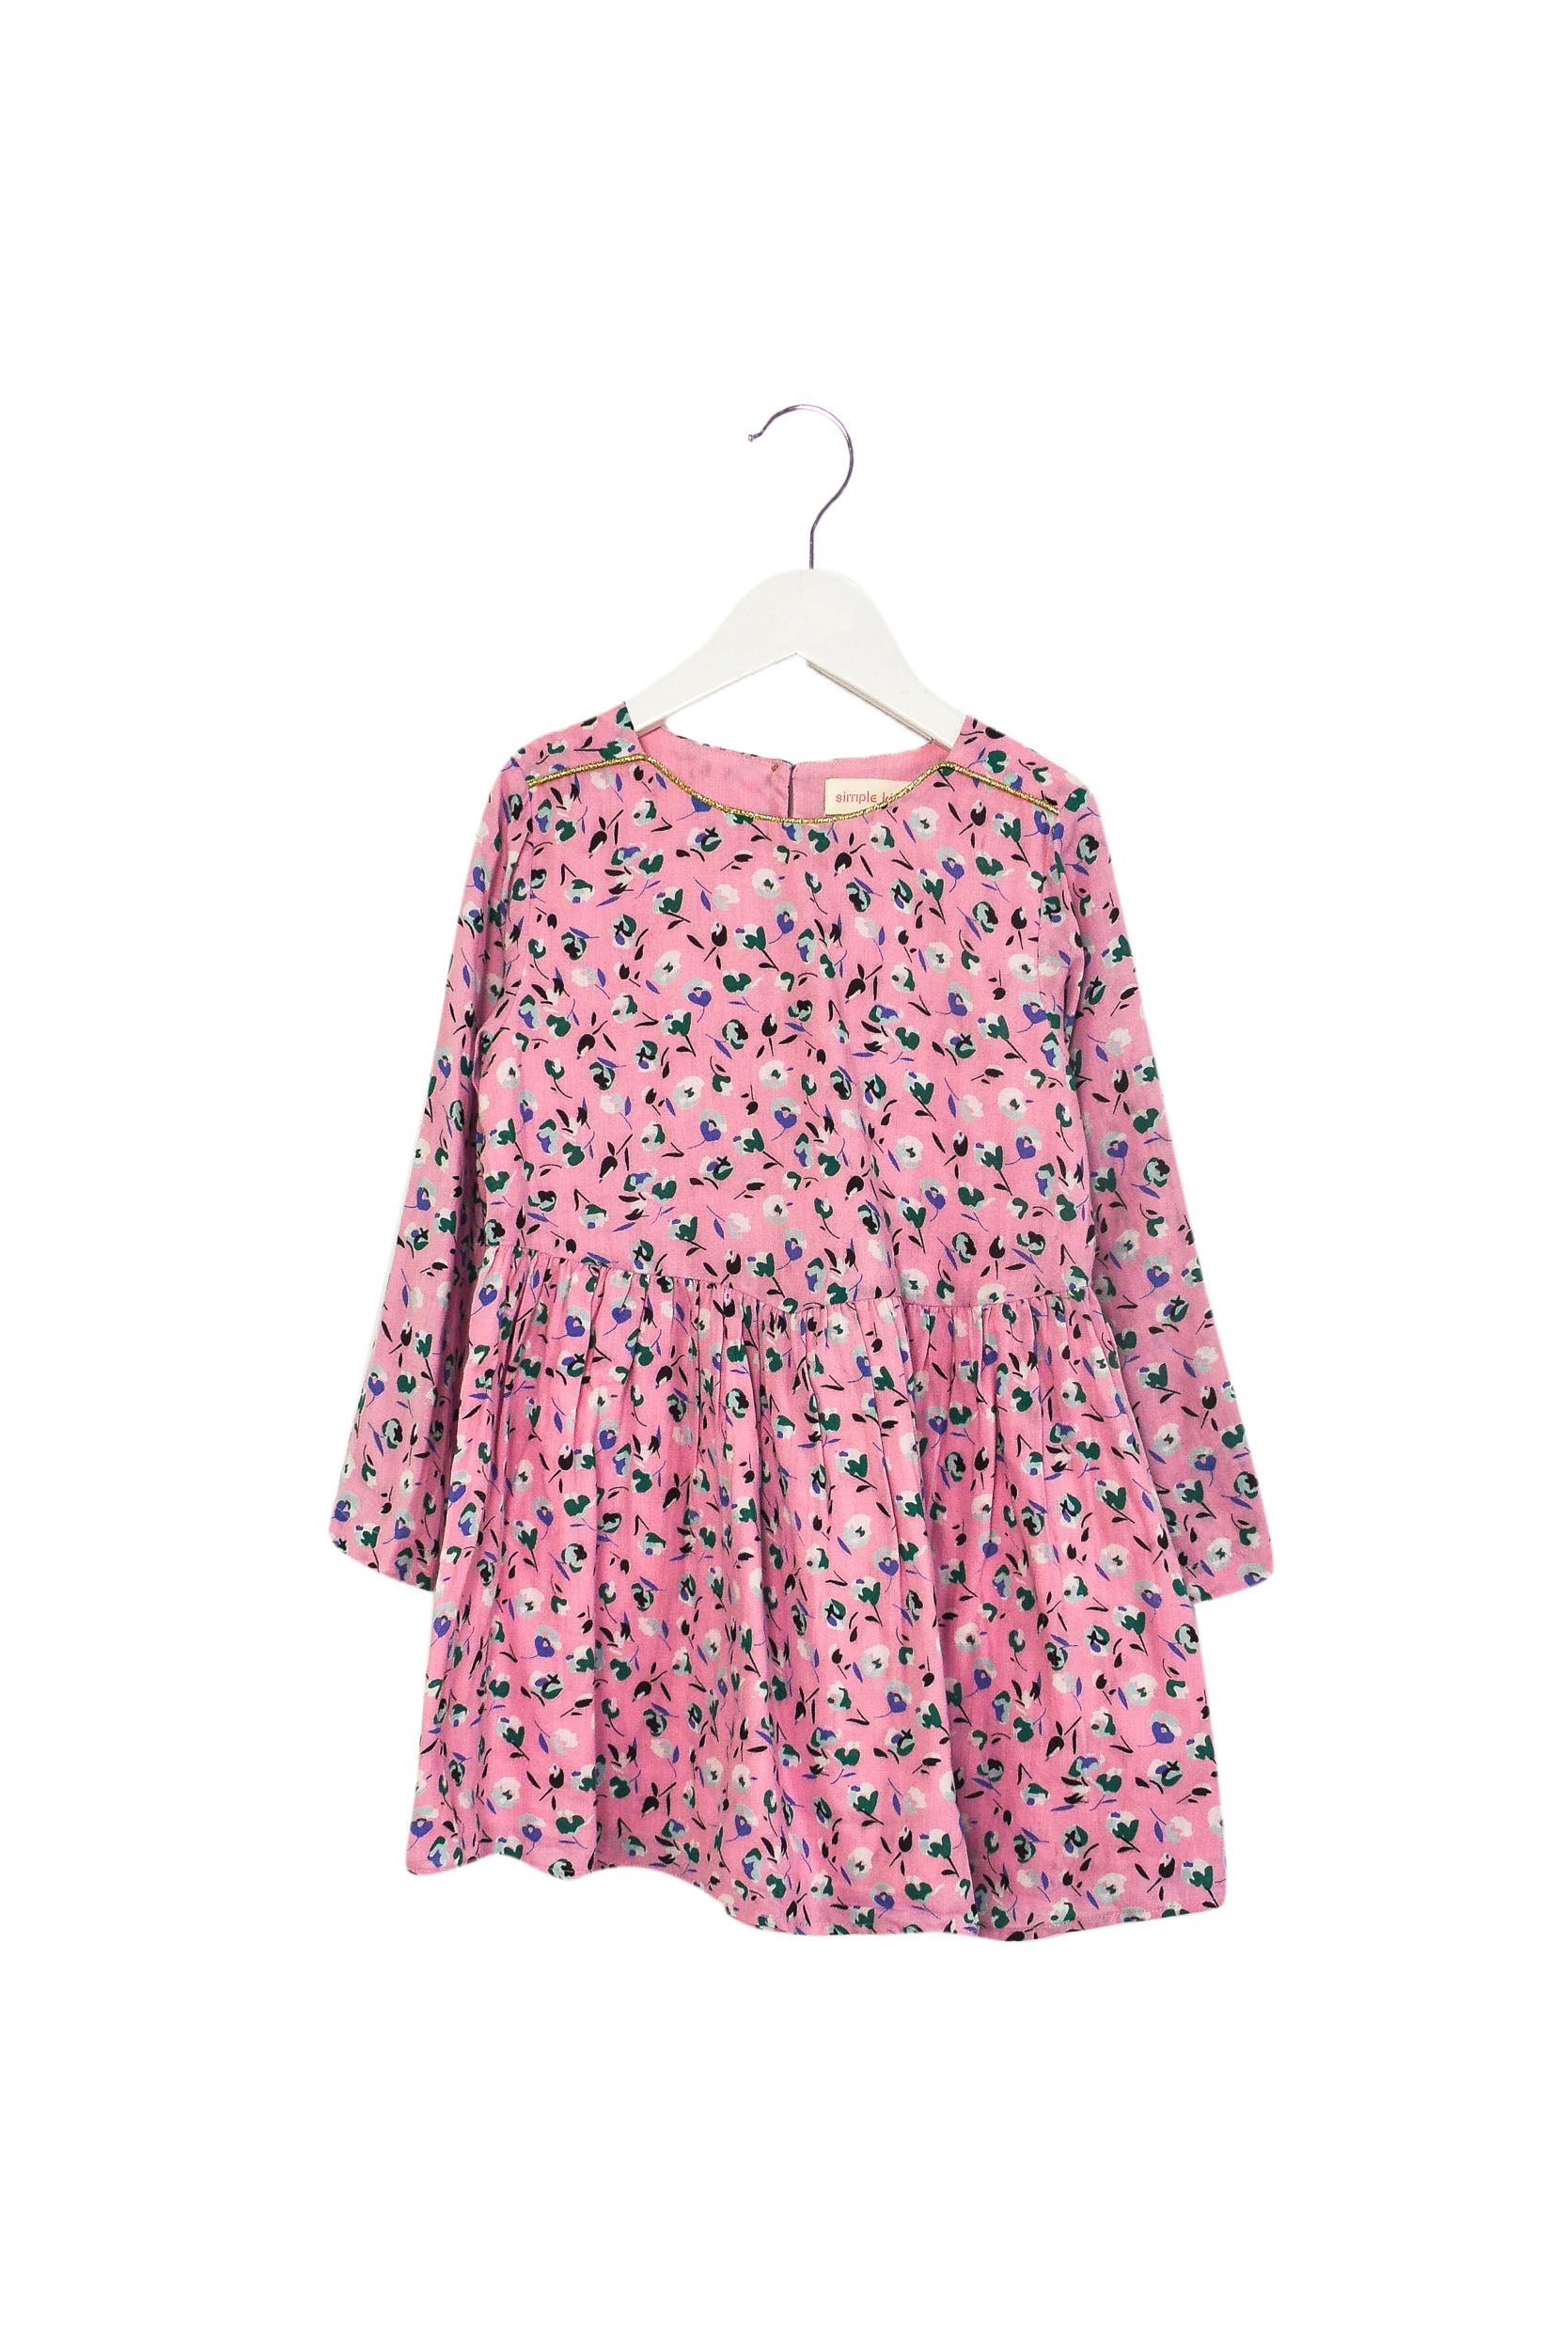 Long Sleeve Dress 6T at Retykle